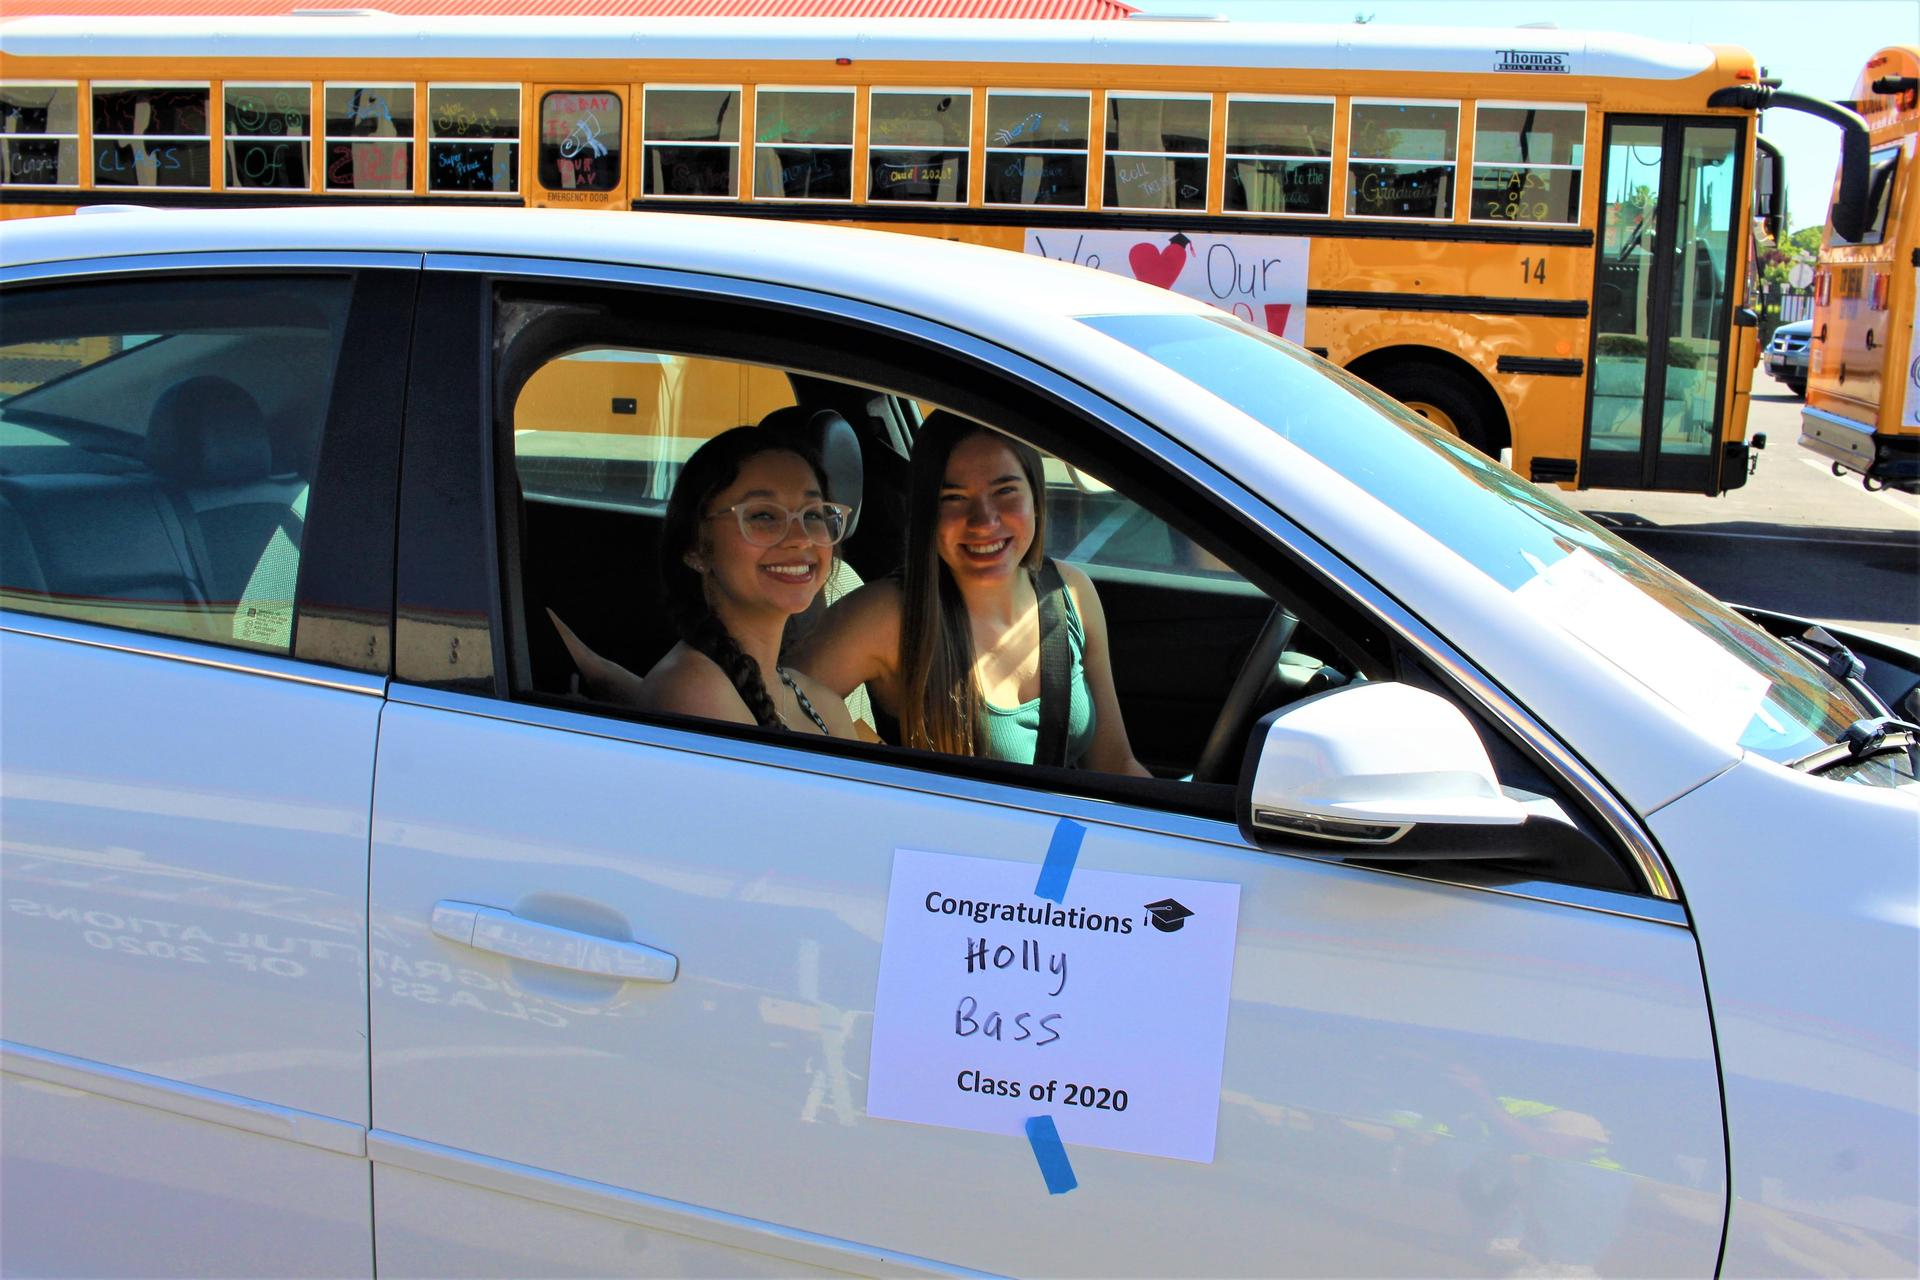 Holly Bass riding with Christina Fuller driving through